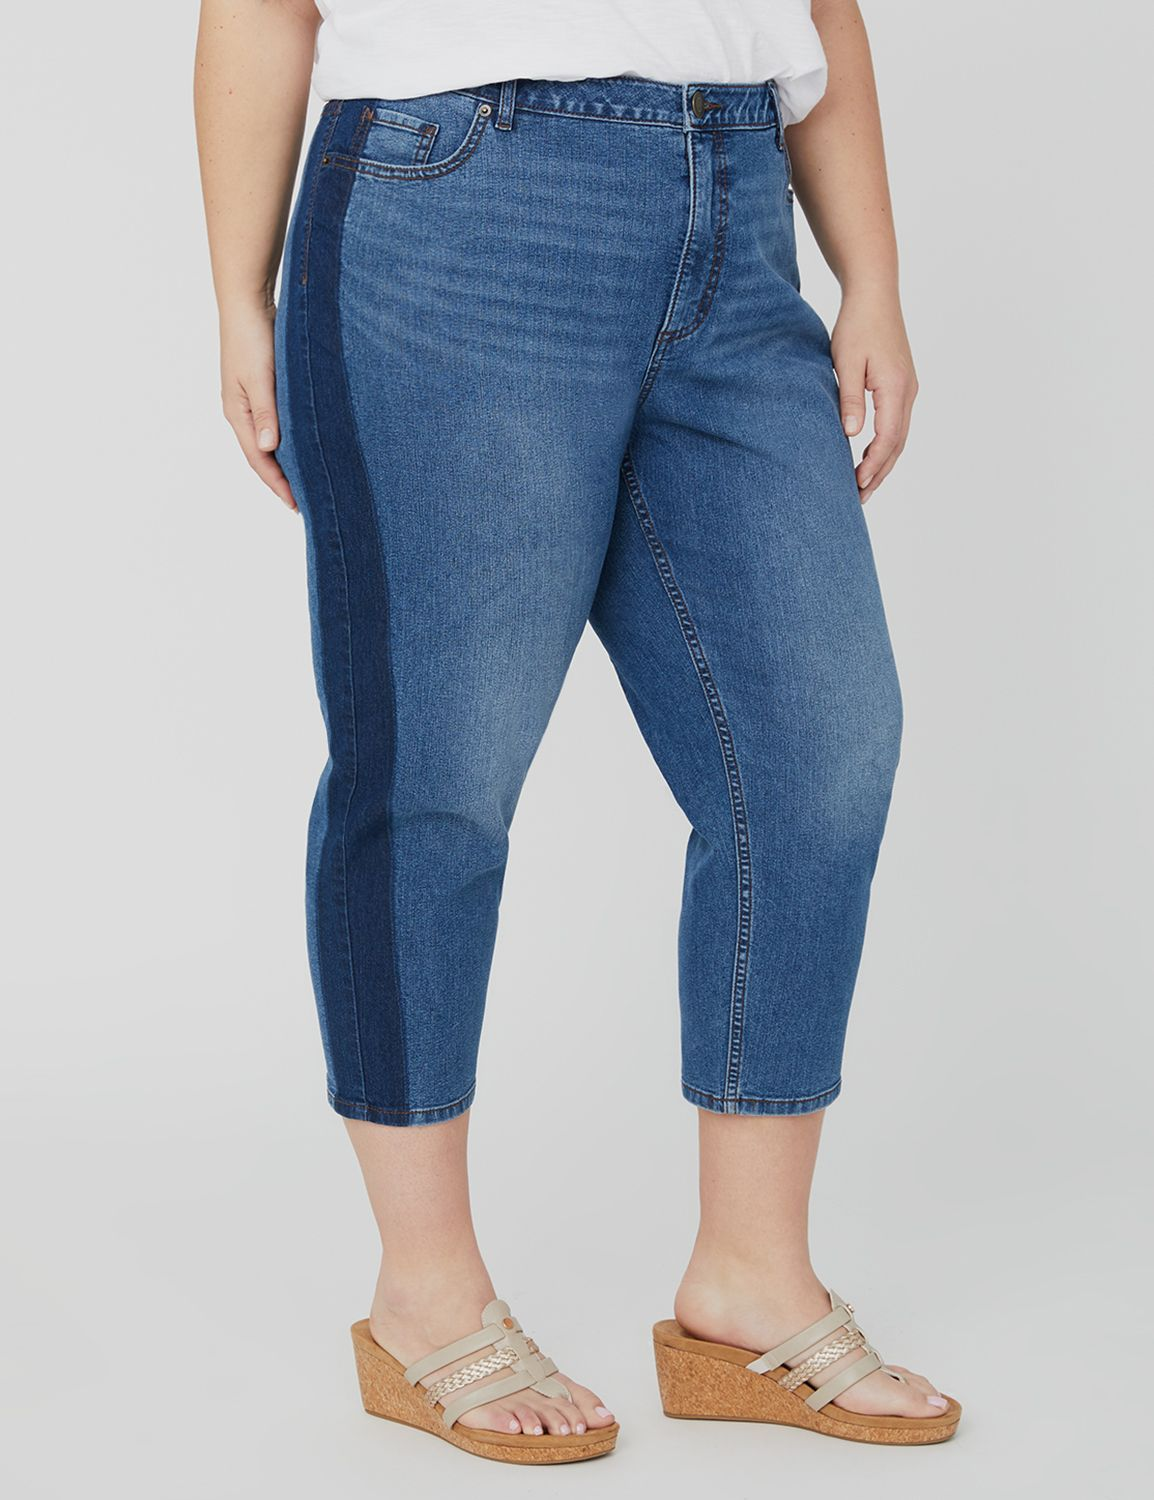 Jean Capri with Dark-Wash Stripe 1088046 2-TONE DENIM WASH ON SIDE S MP-300099561